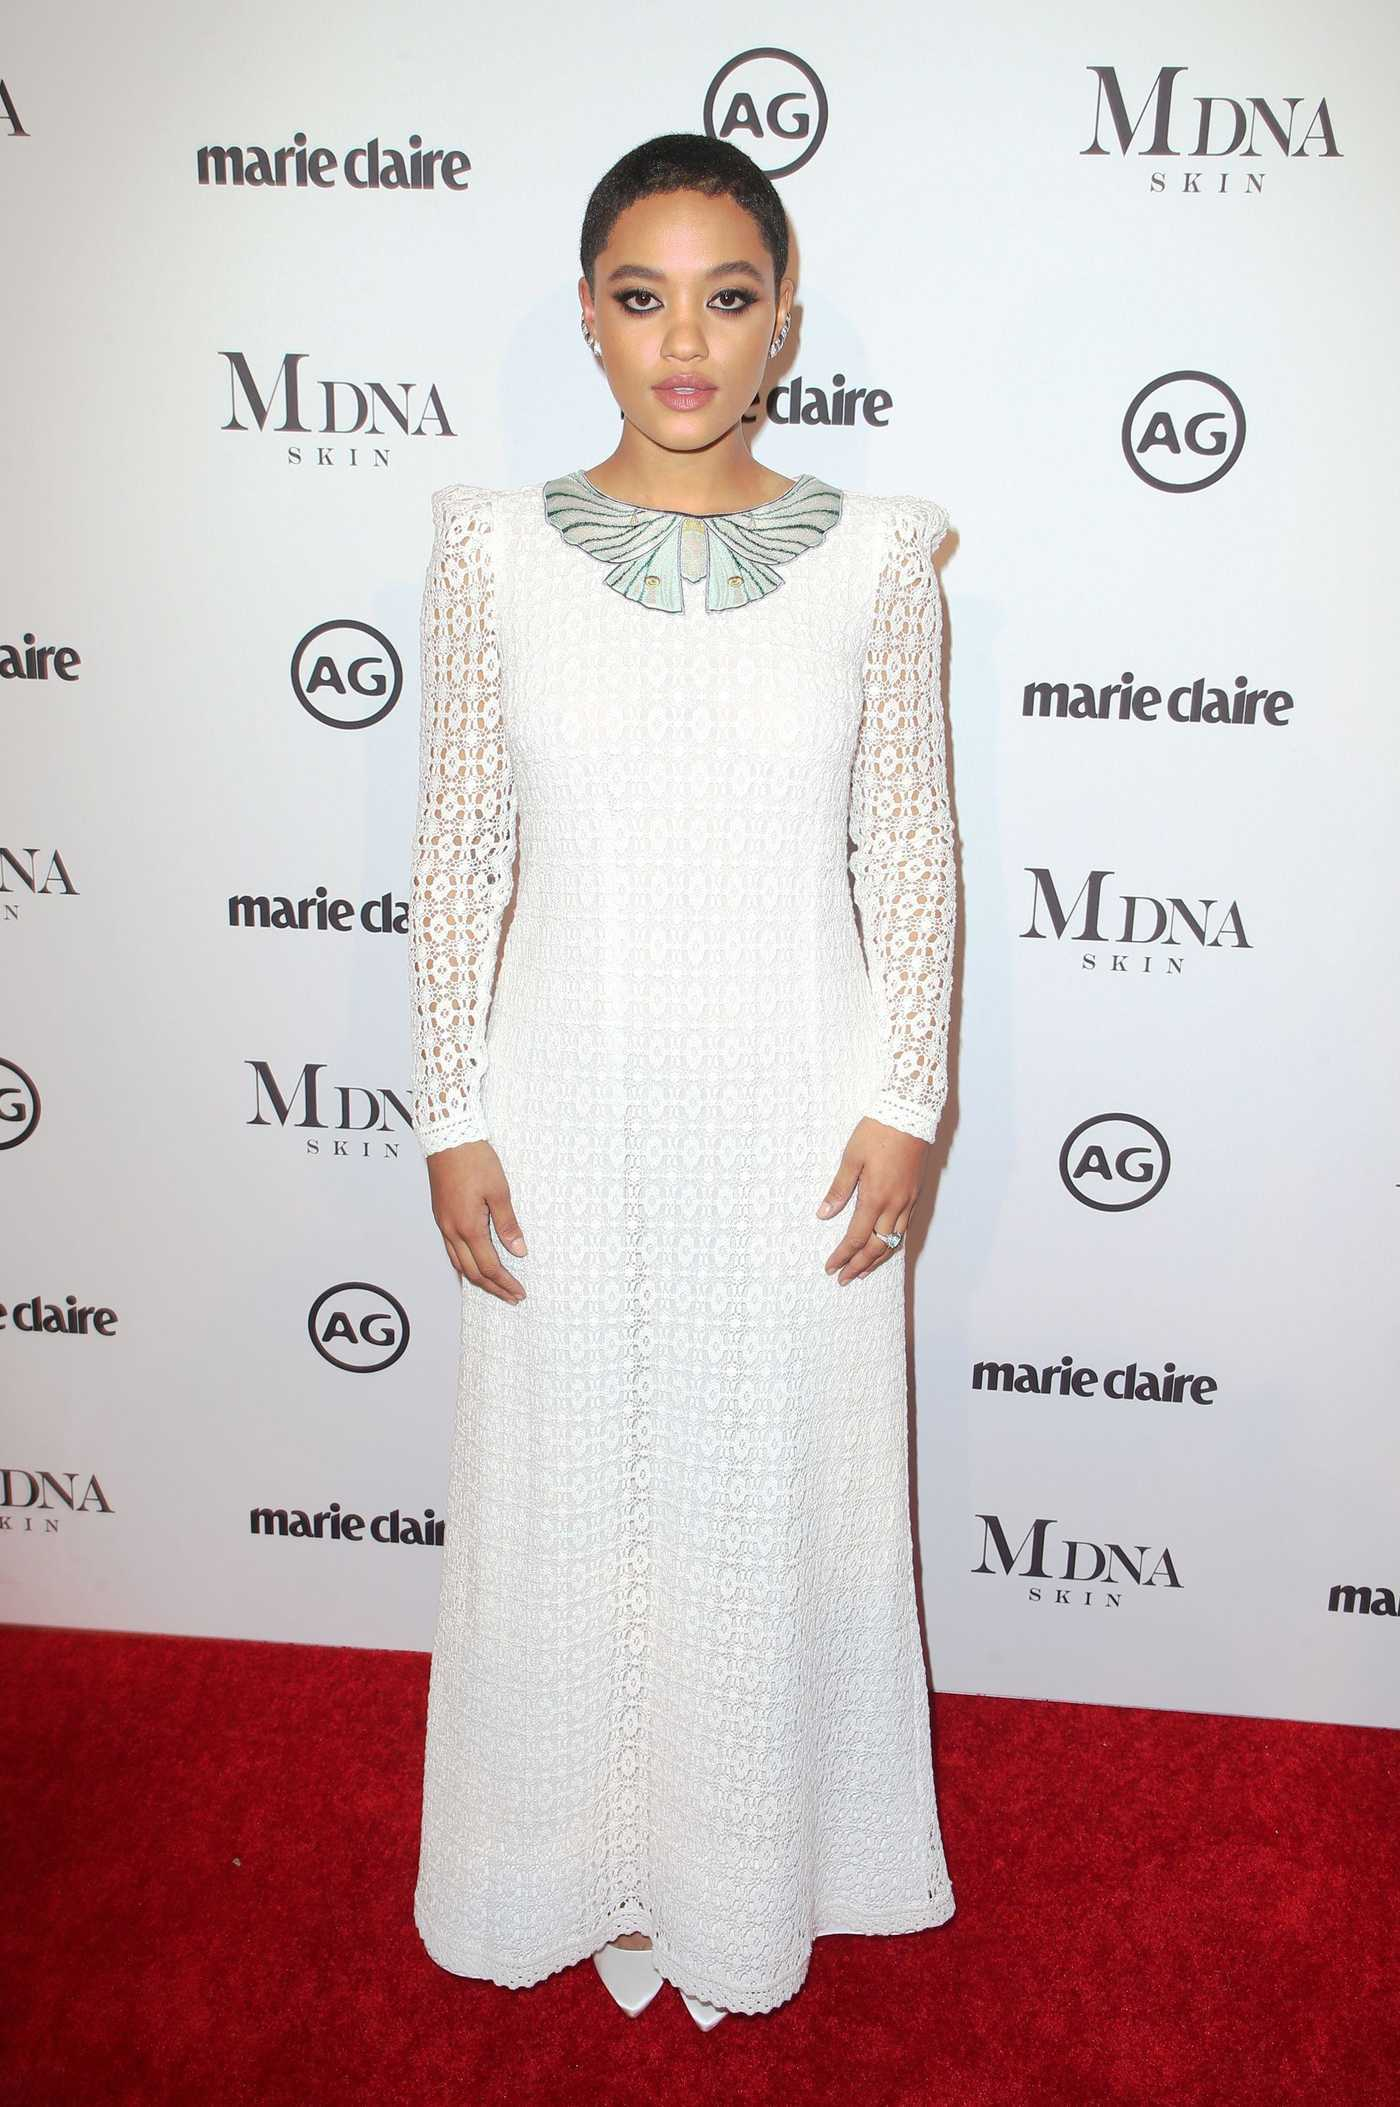 Kiersey Clemons at the Marie Claire Image Makers Awards in Los Angeles 01/11/2018